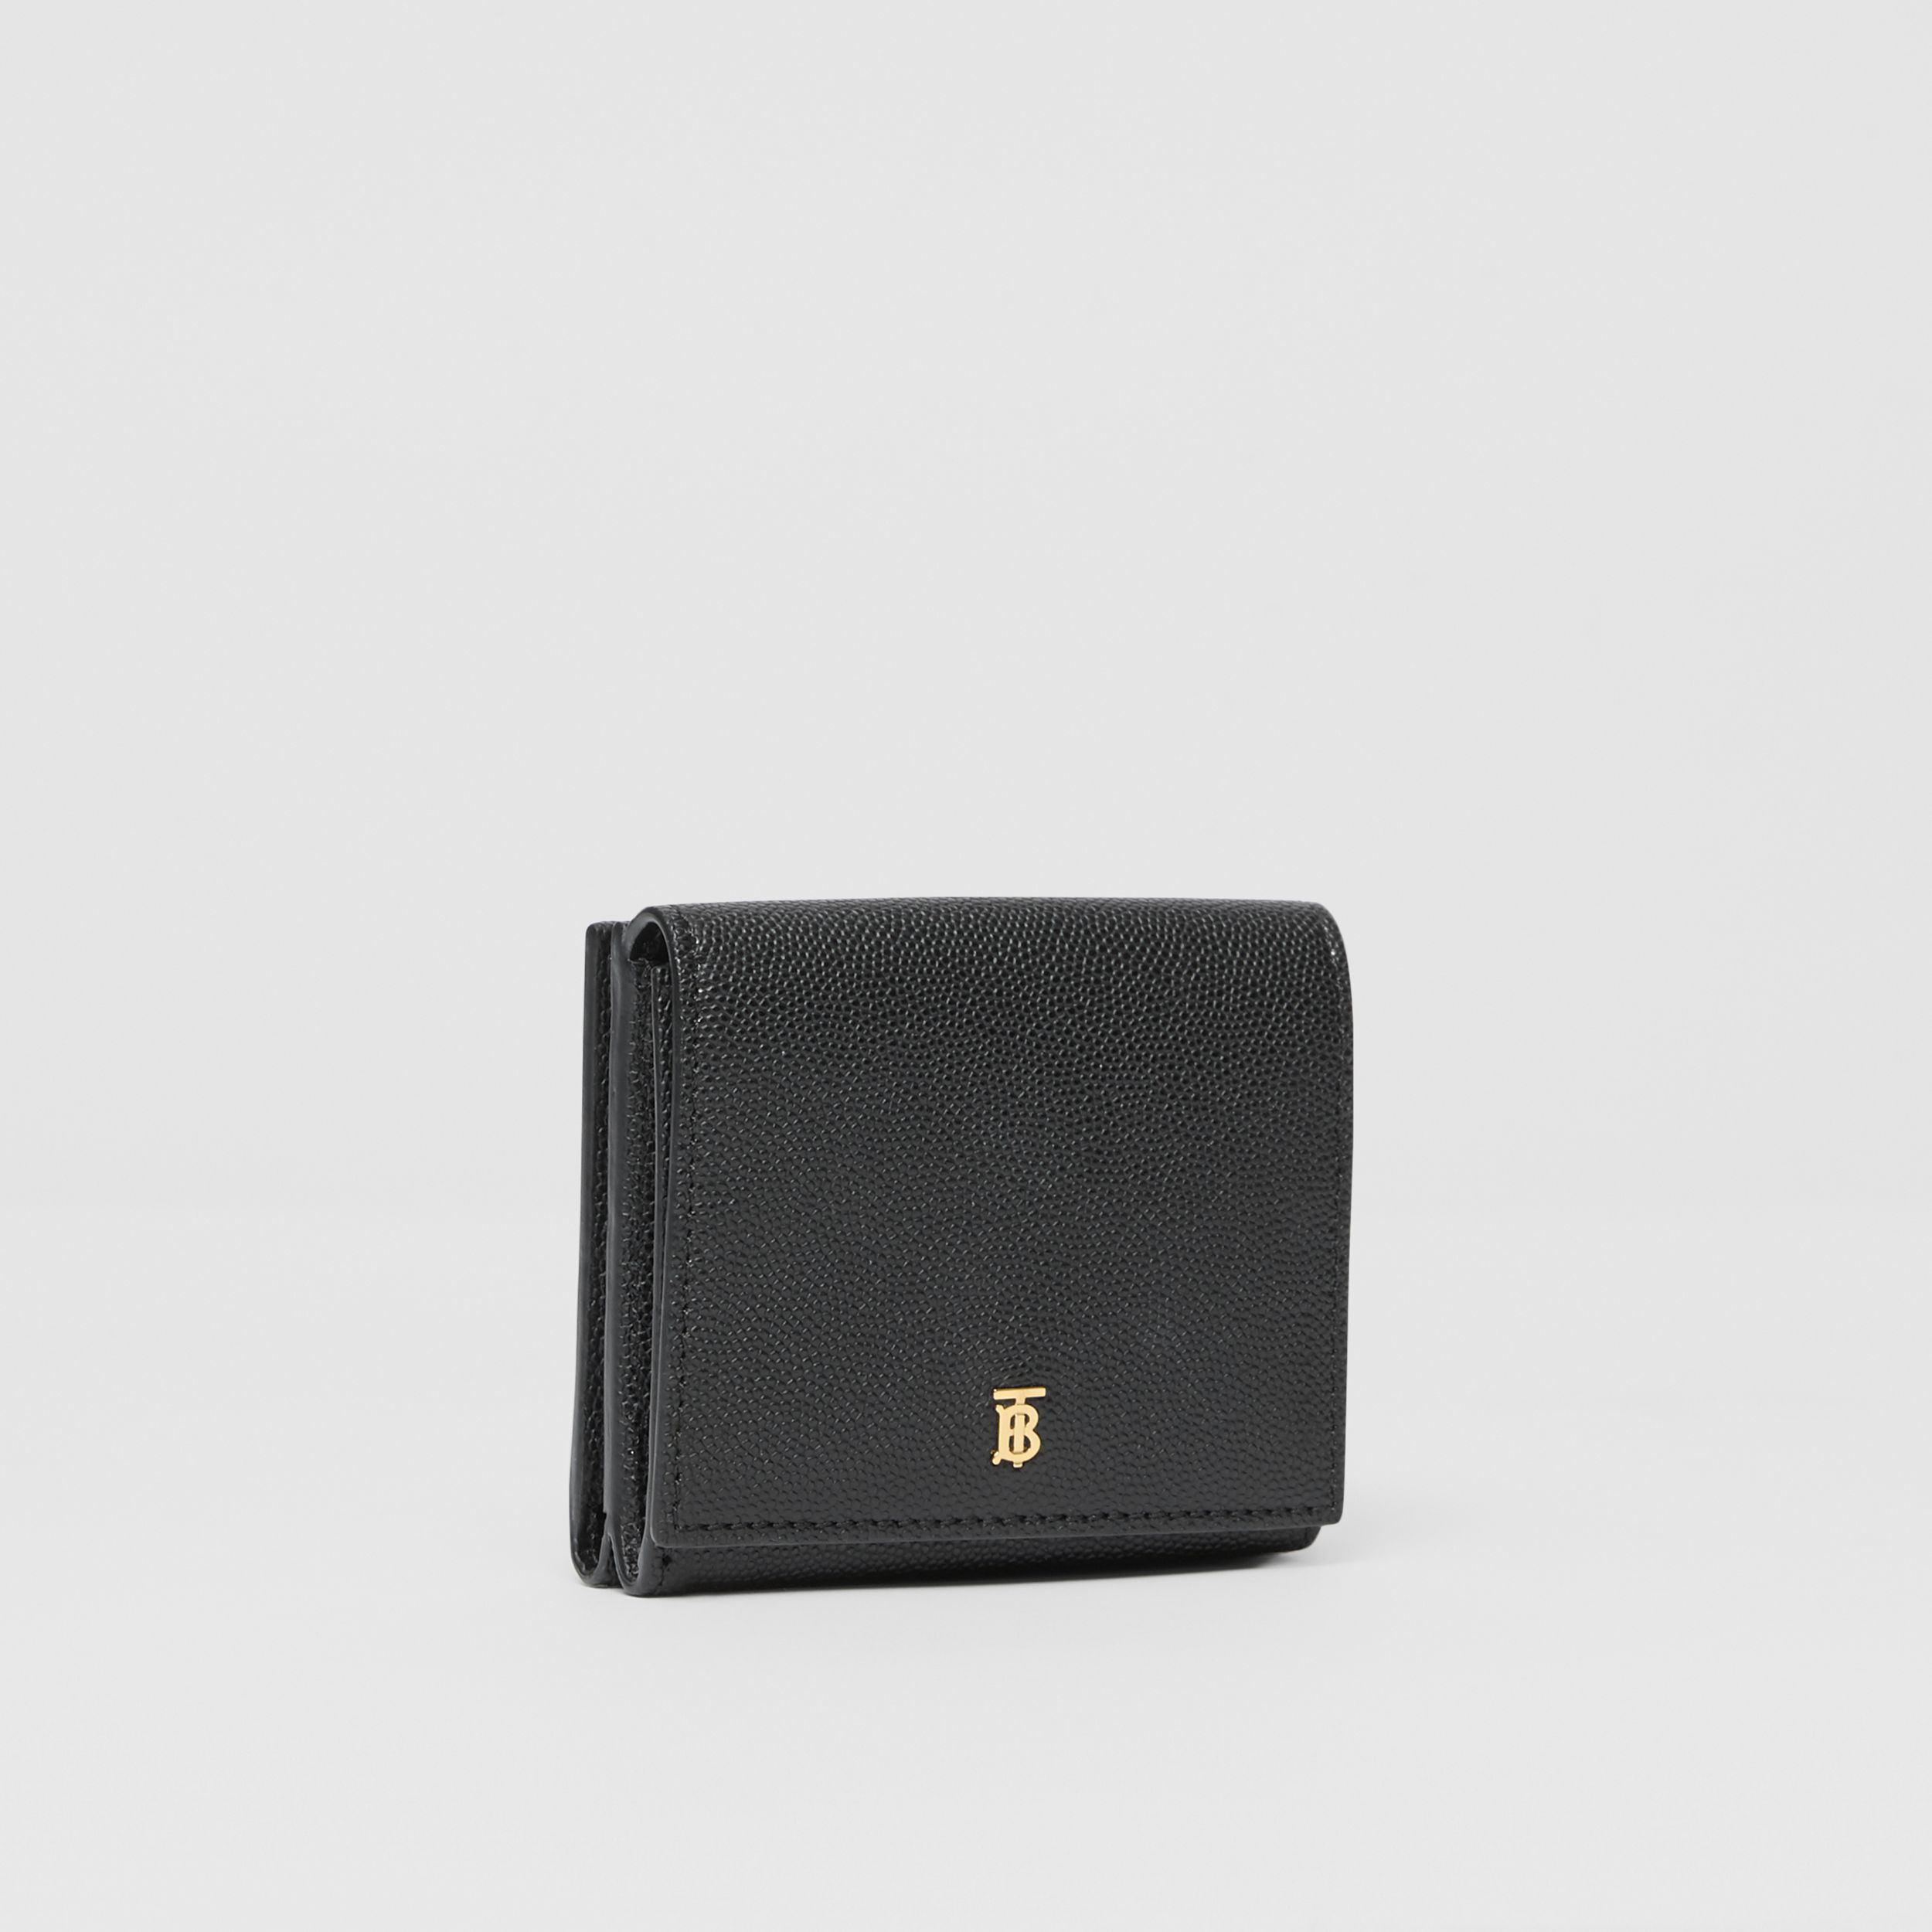 Monogram Motif Grainy Leather Folding Wallet in Black - Women | Burberry - 3